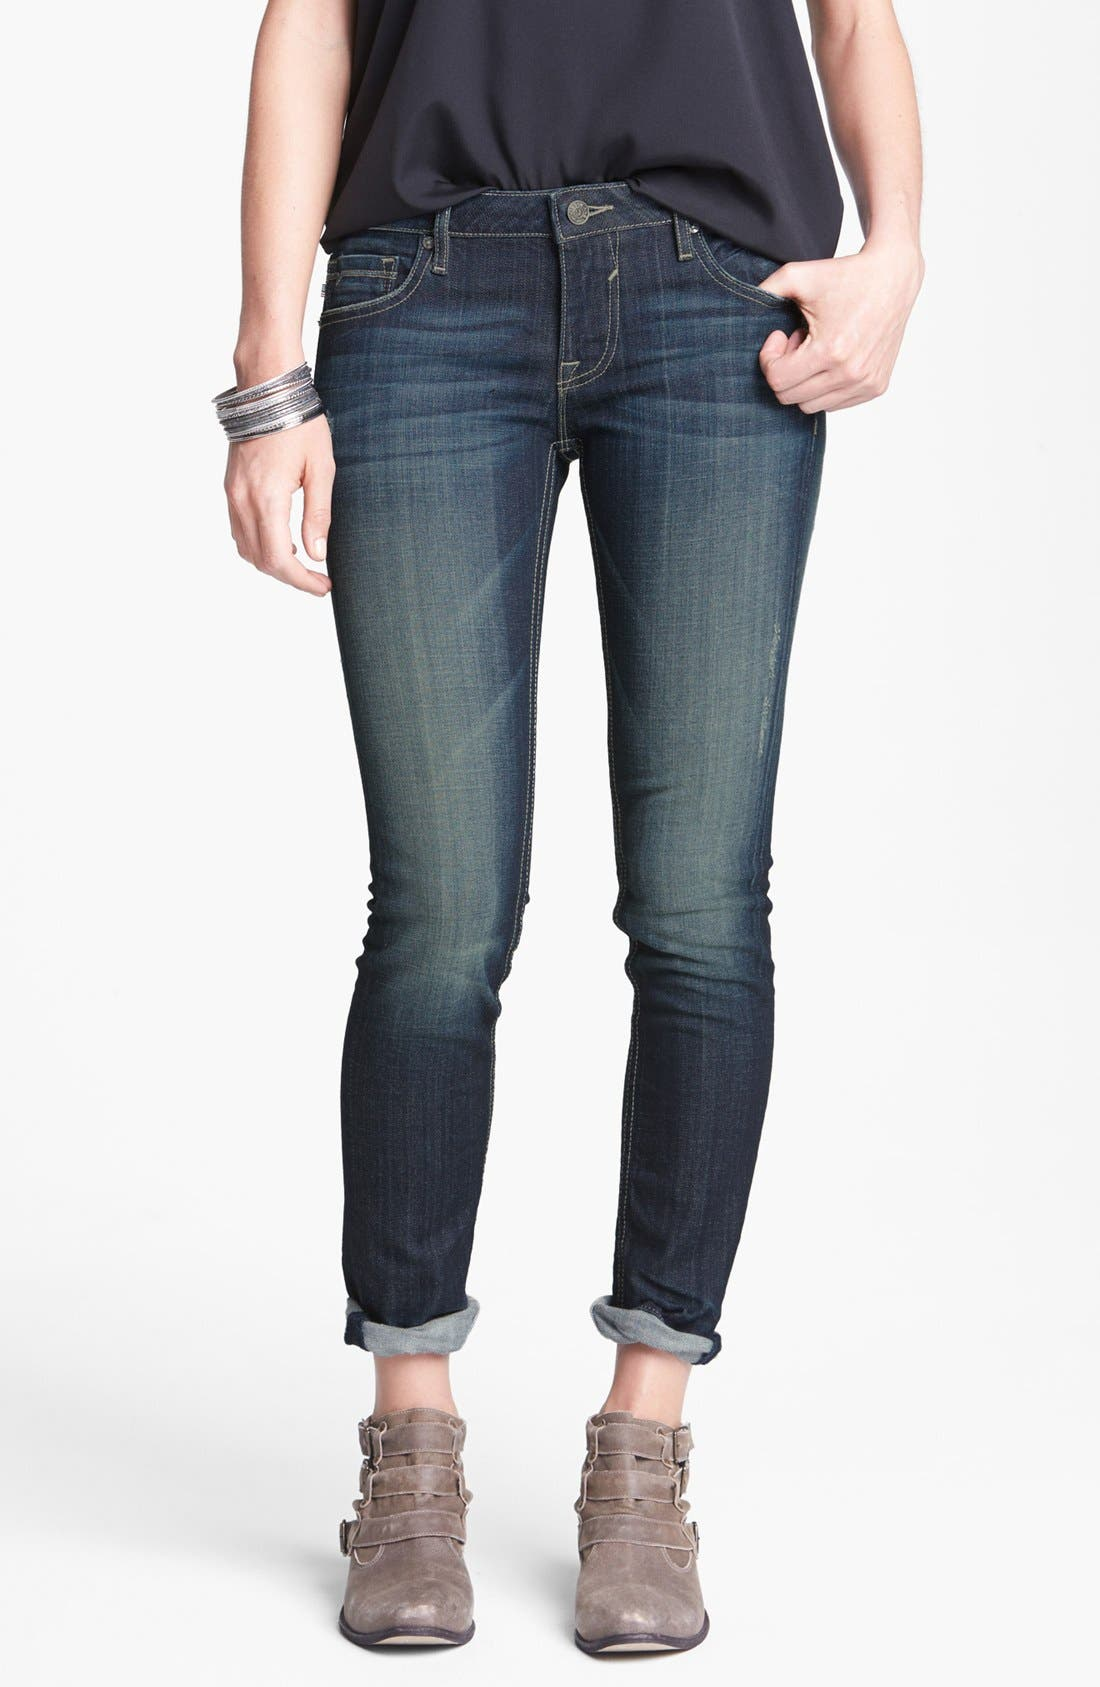 Alternate Image 1 Selected - Vigoss 'Thompson Tomboy' Crop Skinny Boyfriend Jeans (Dark) (Juniors)